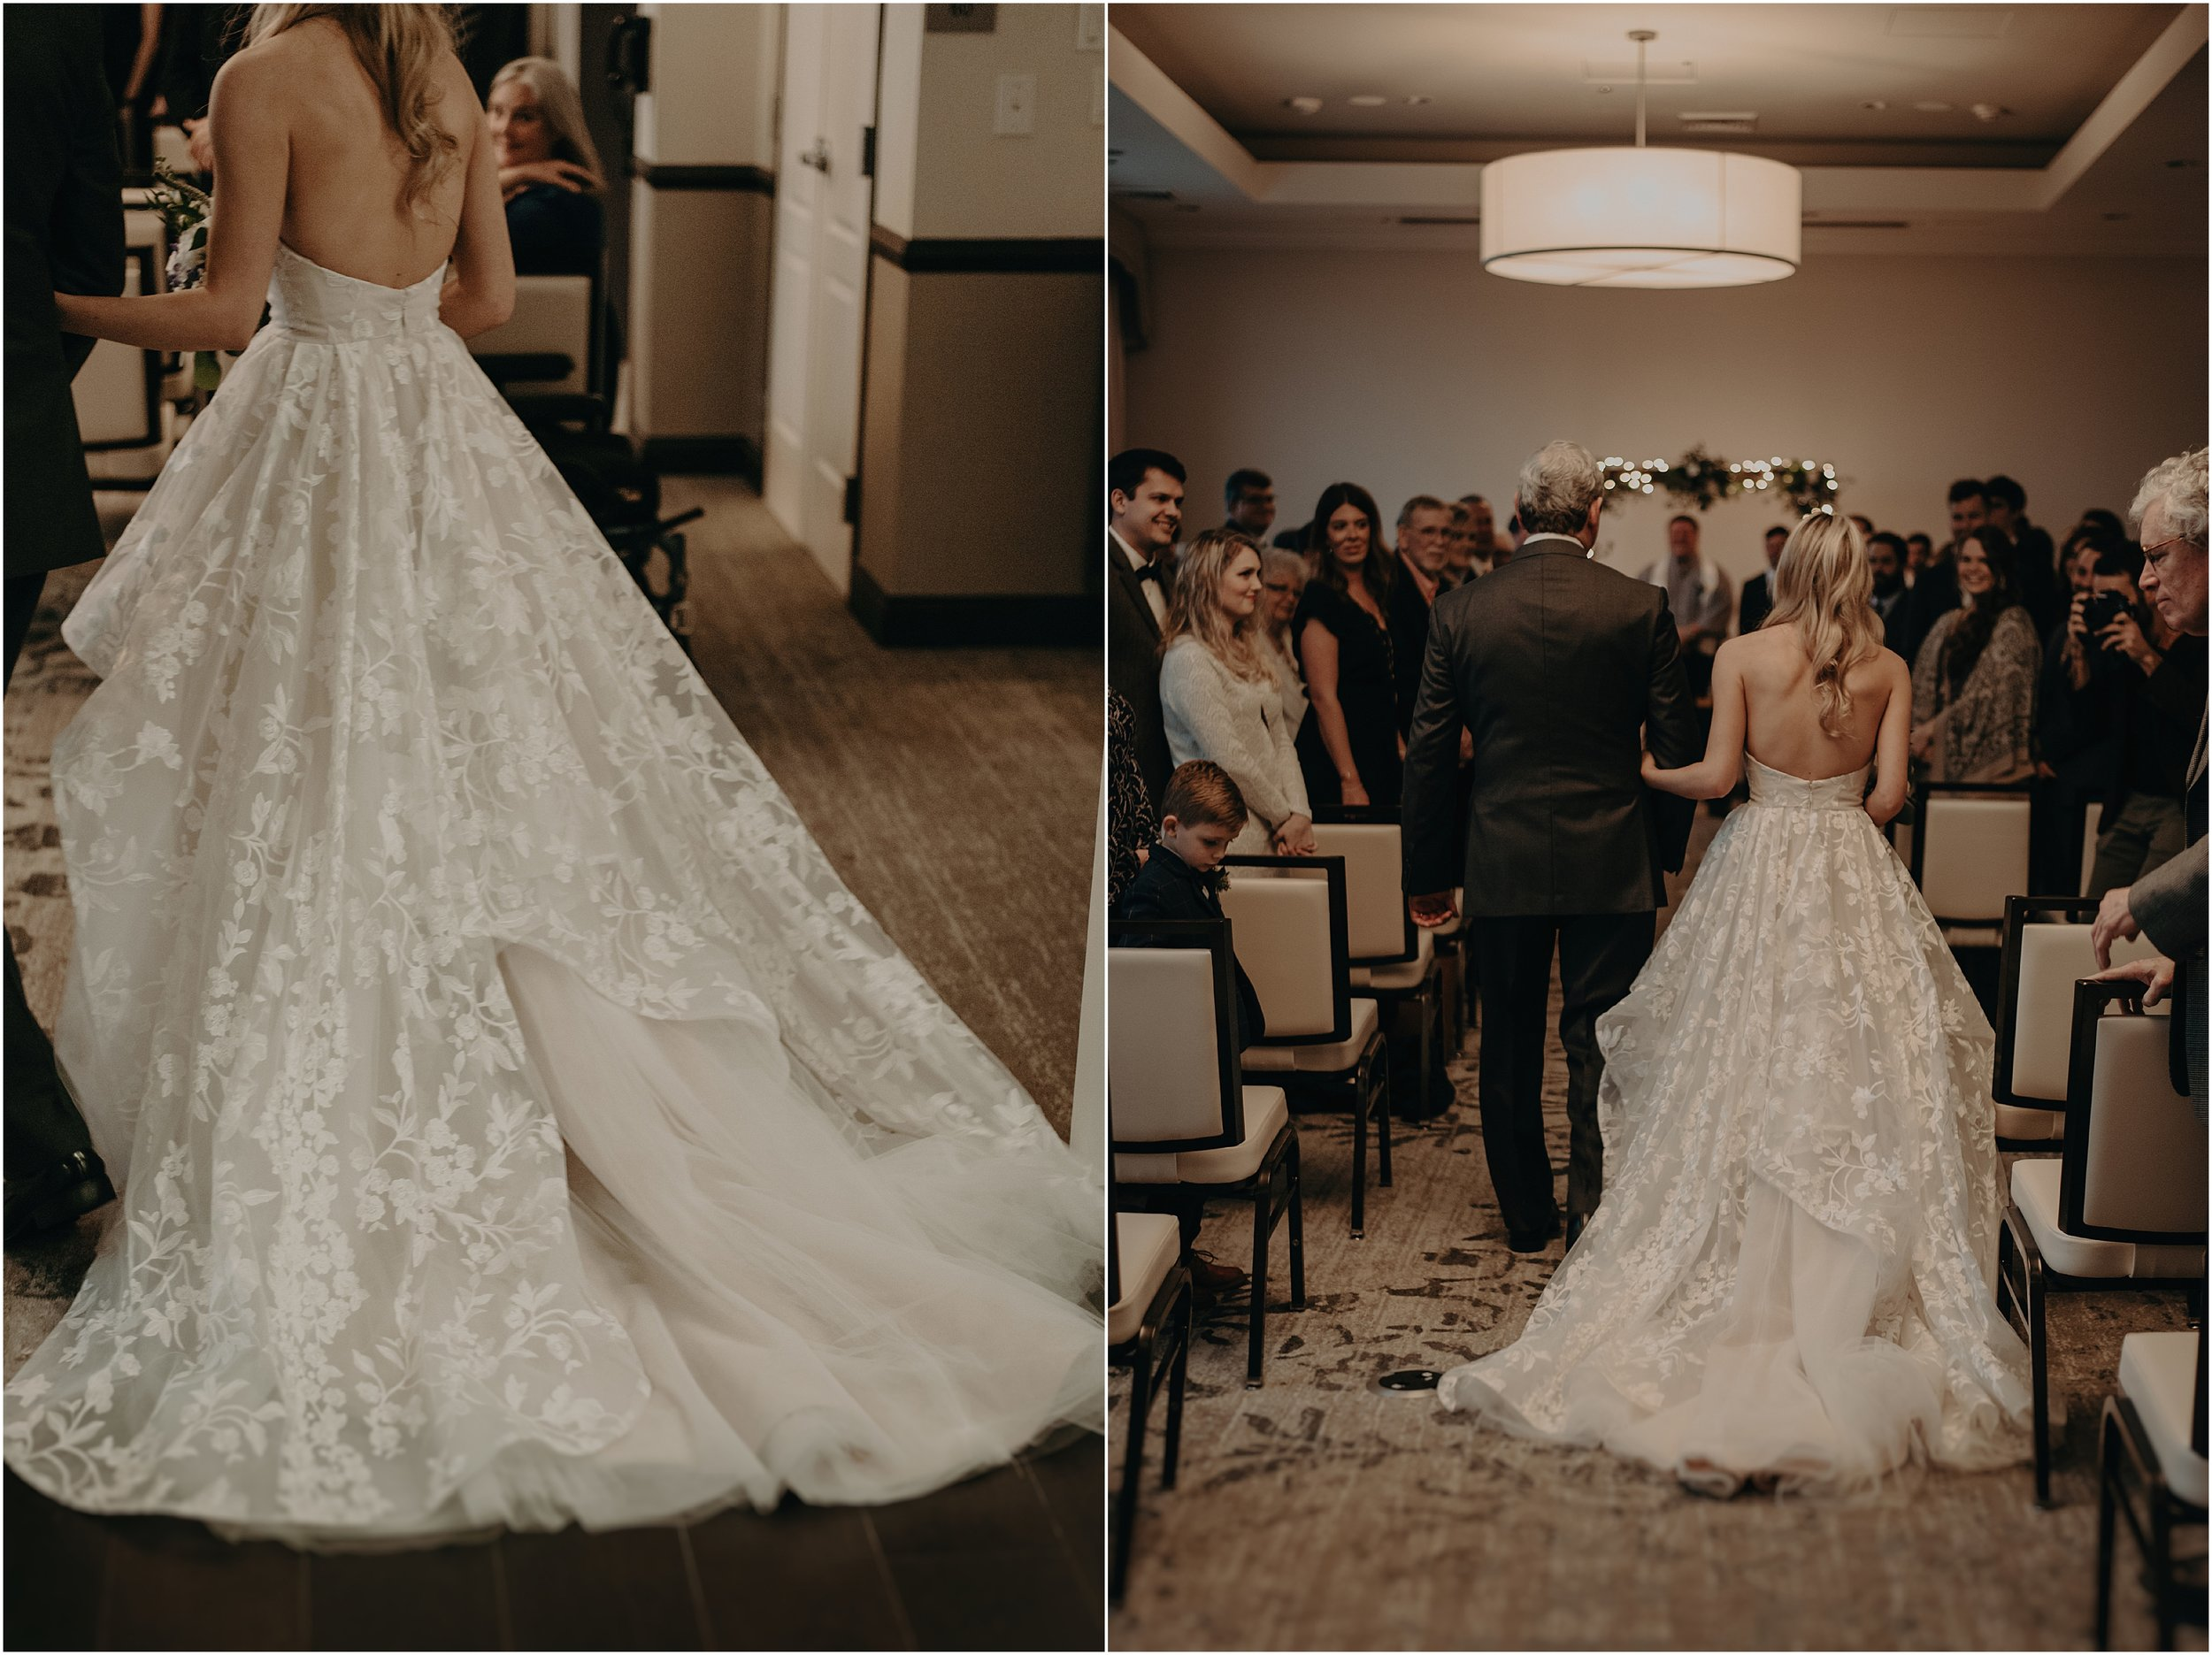 The bride makes her entrance to the ceremony in her beautiful Hayley Paige gown